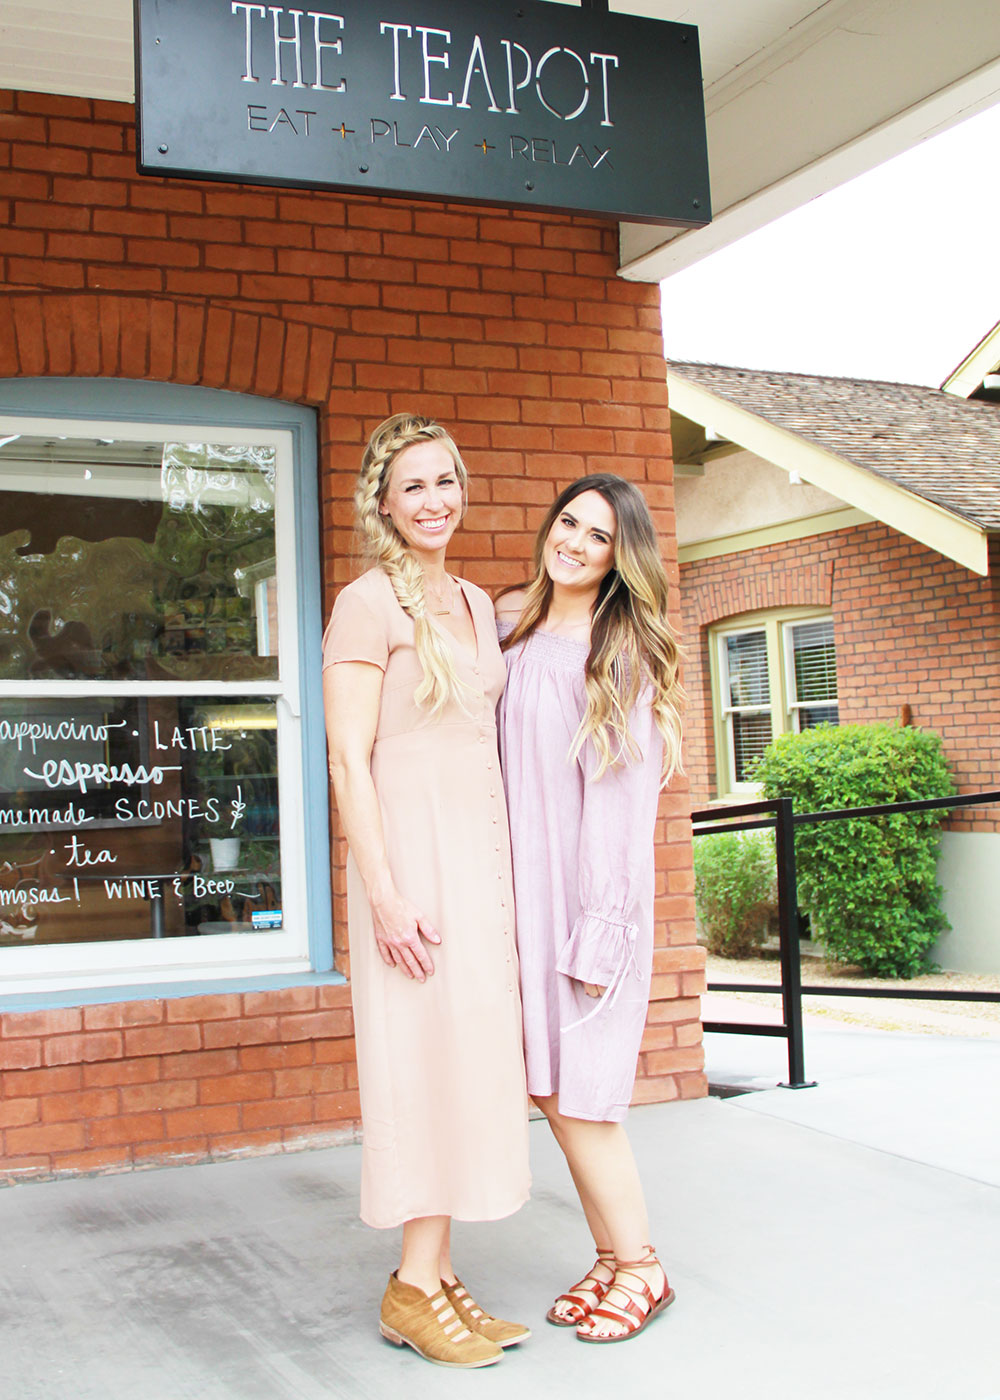 my girl ashley @sunshineandlullabies and me at the teapot in phoenix   thelovedesignedlife.com